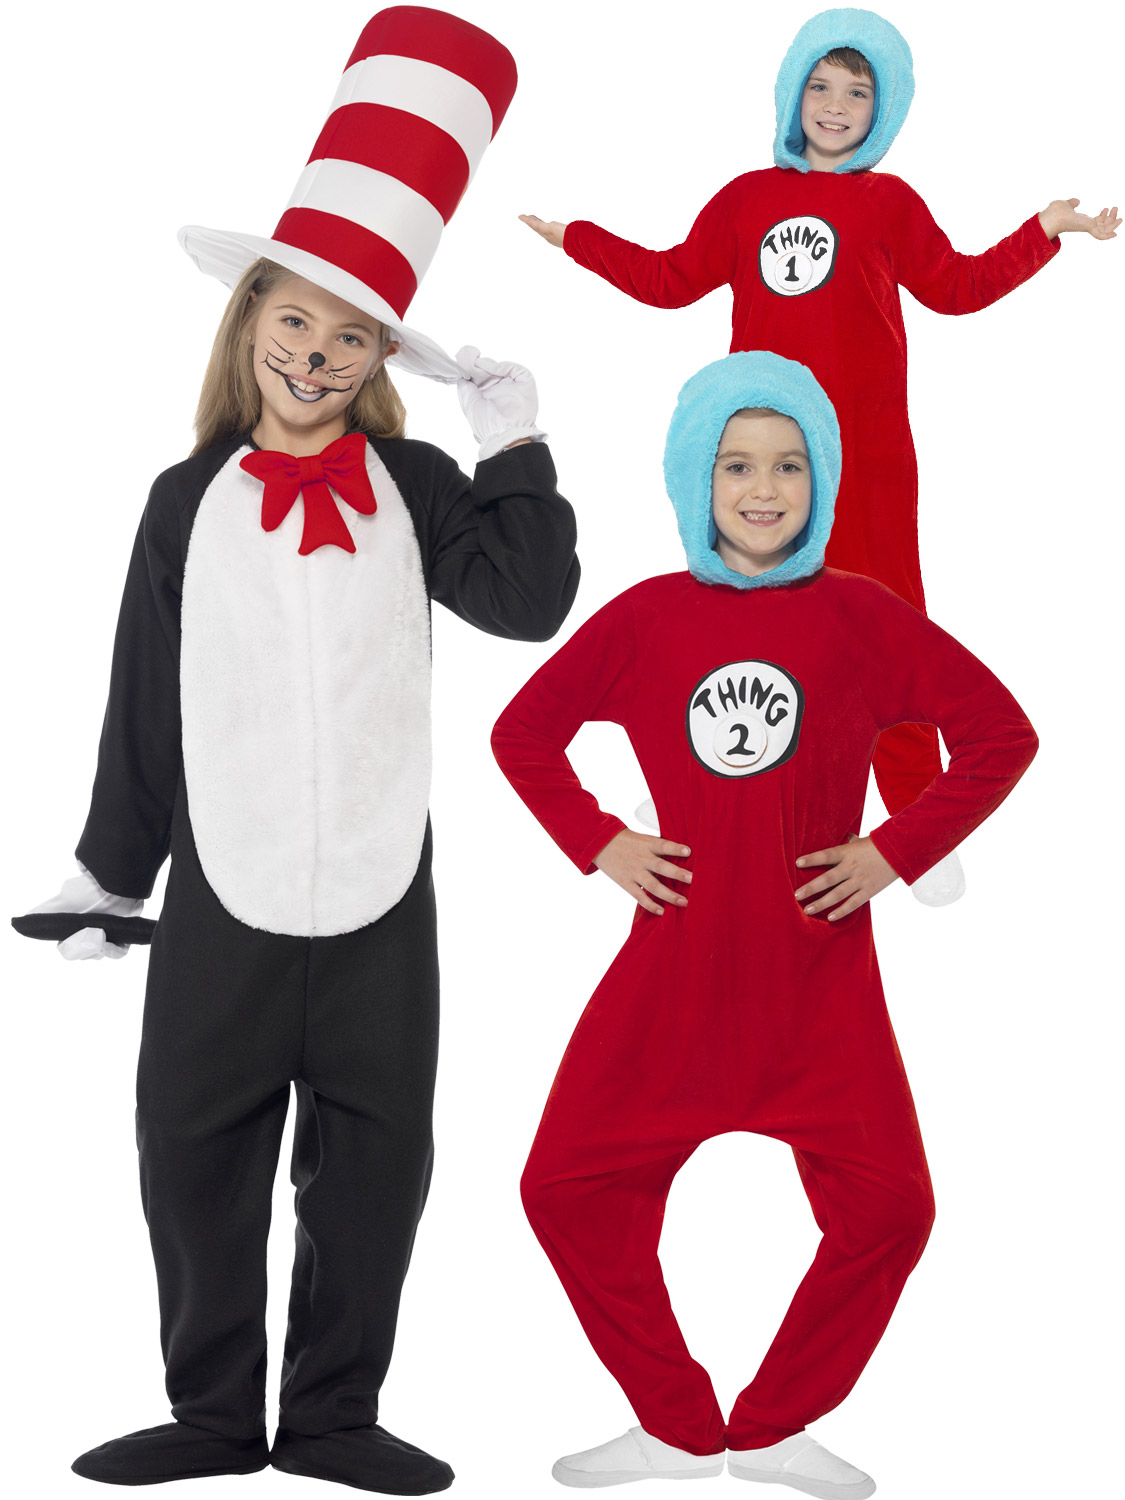 Kids Cat In The Hat Costume Dr Seuss Thing 1 2 Girls Boys